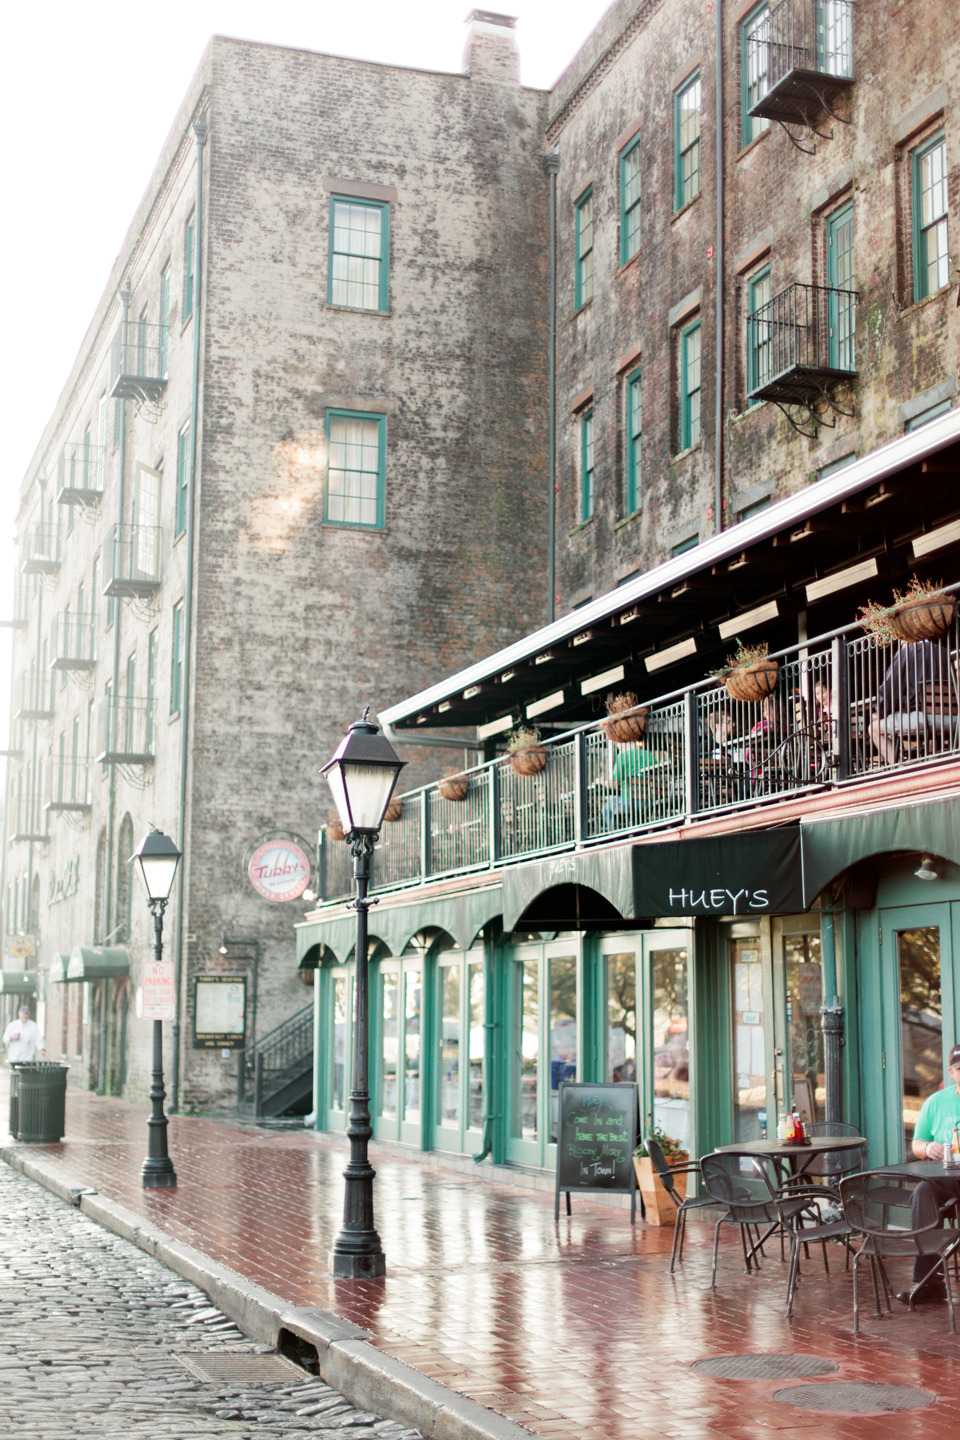 Image of East River Street in historic downtown Savannah.  There is a cobblestone street with a sidewalk cafe and lamp posts.